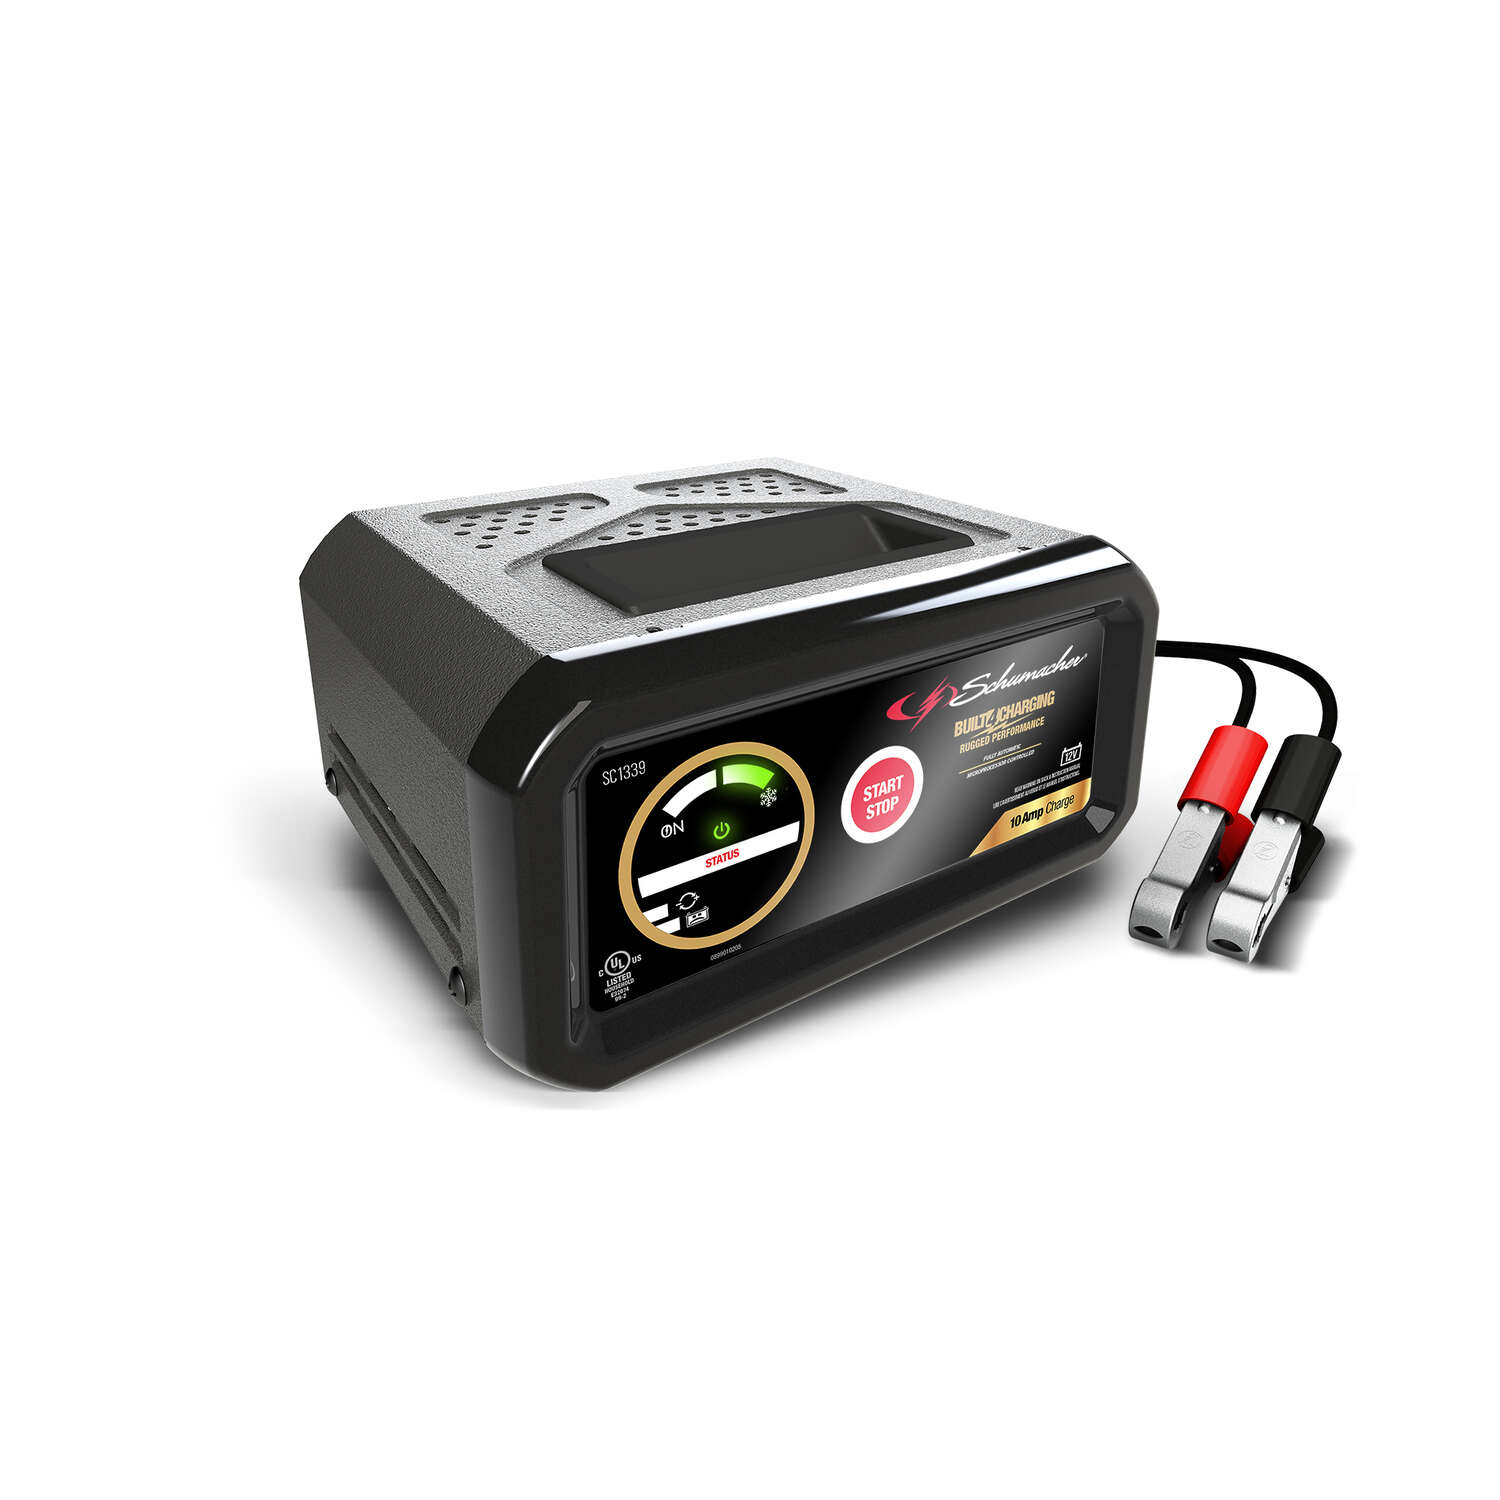 Luminous battery charger 12v 10 amp copper canyon little trees